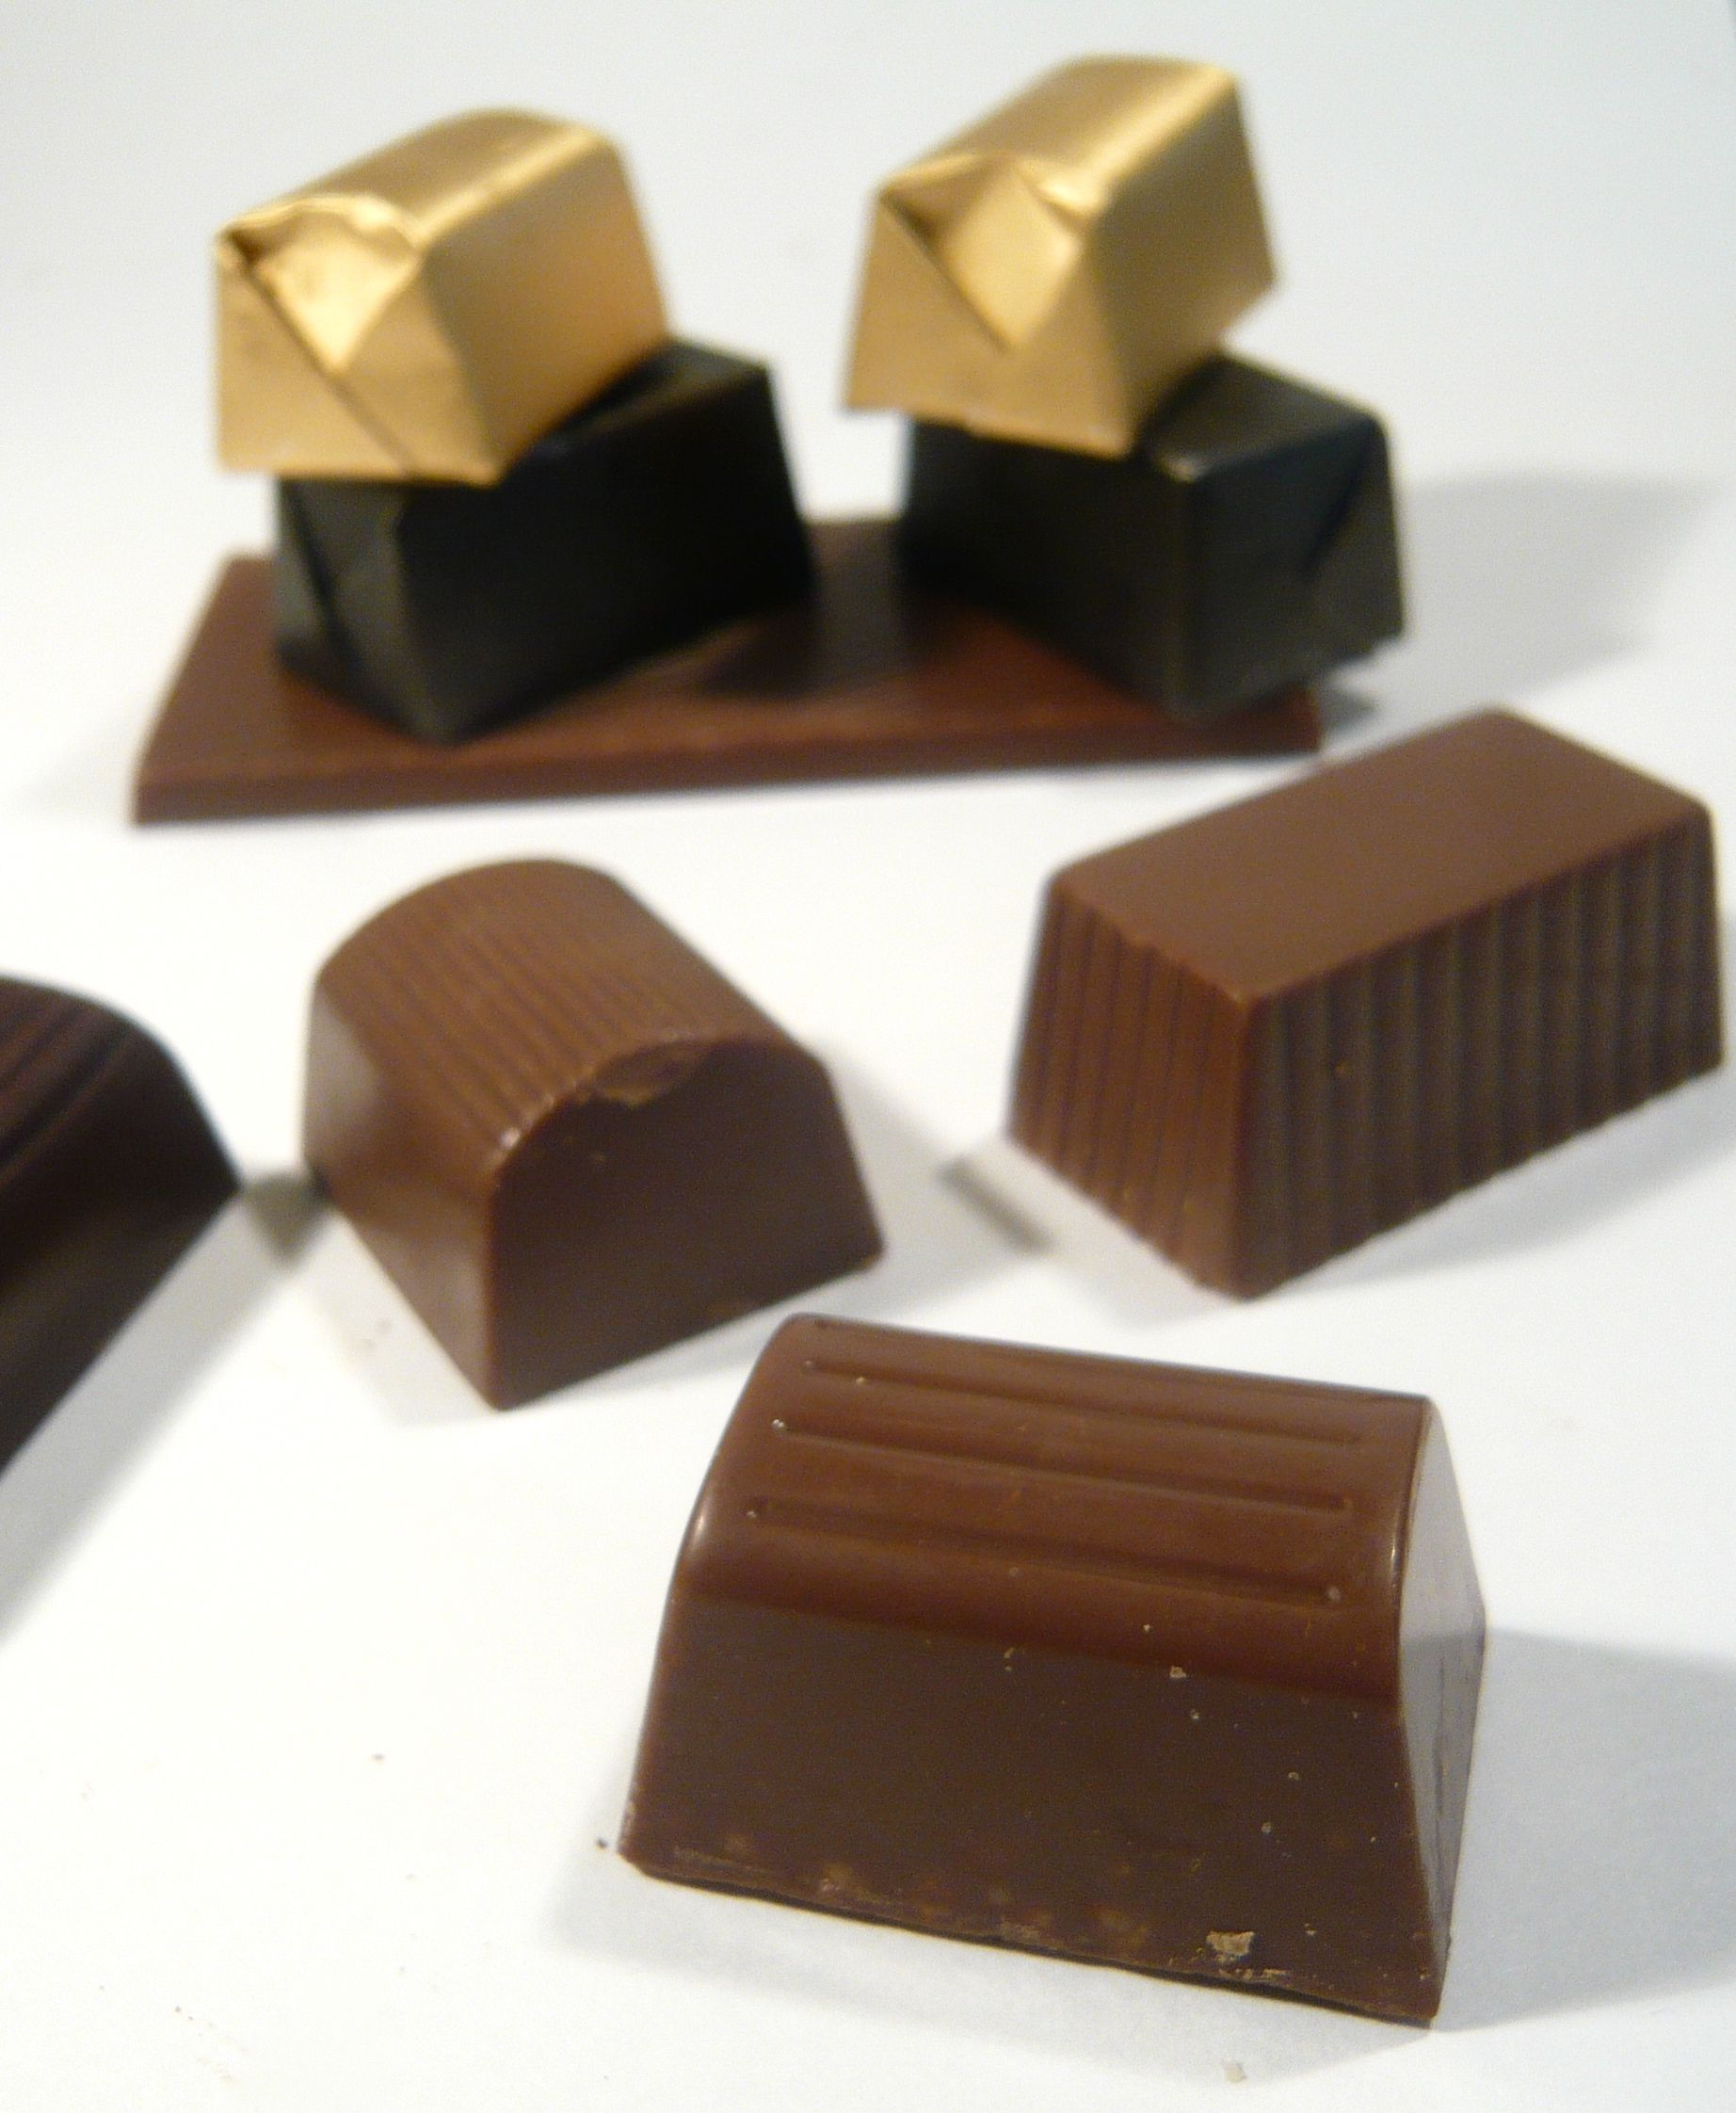 Patchi Selection Chocolate Review